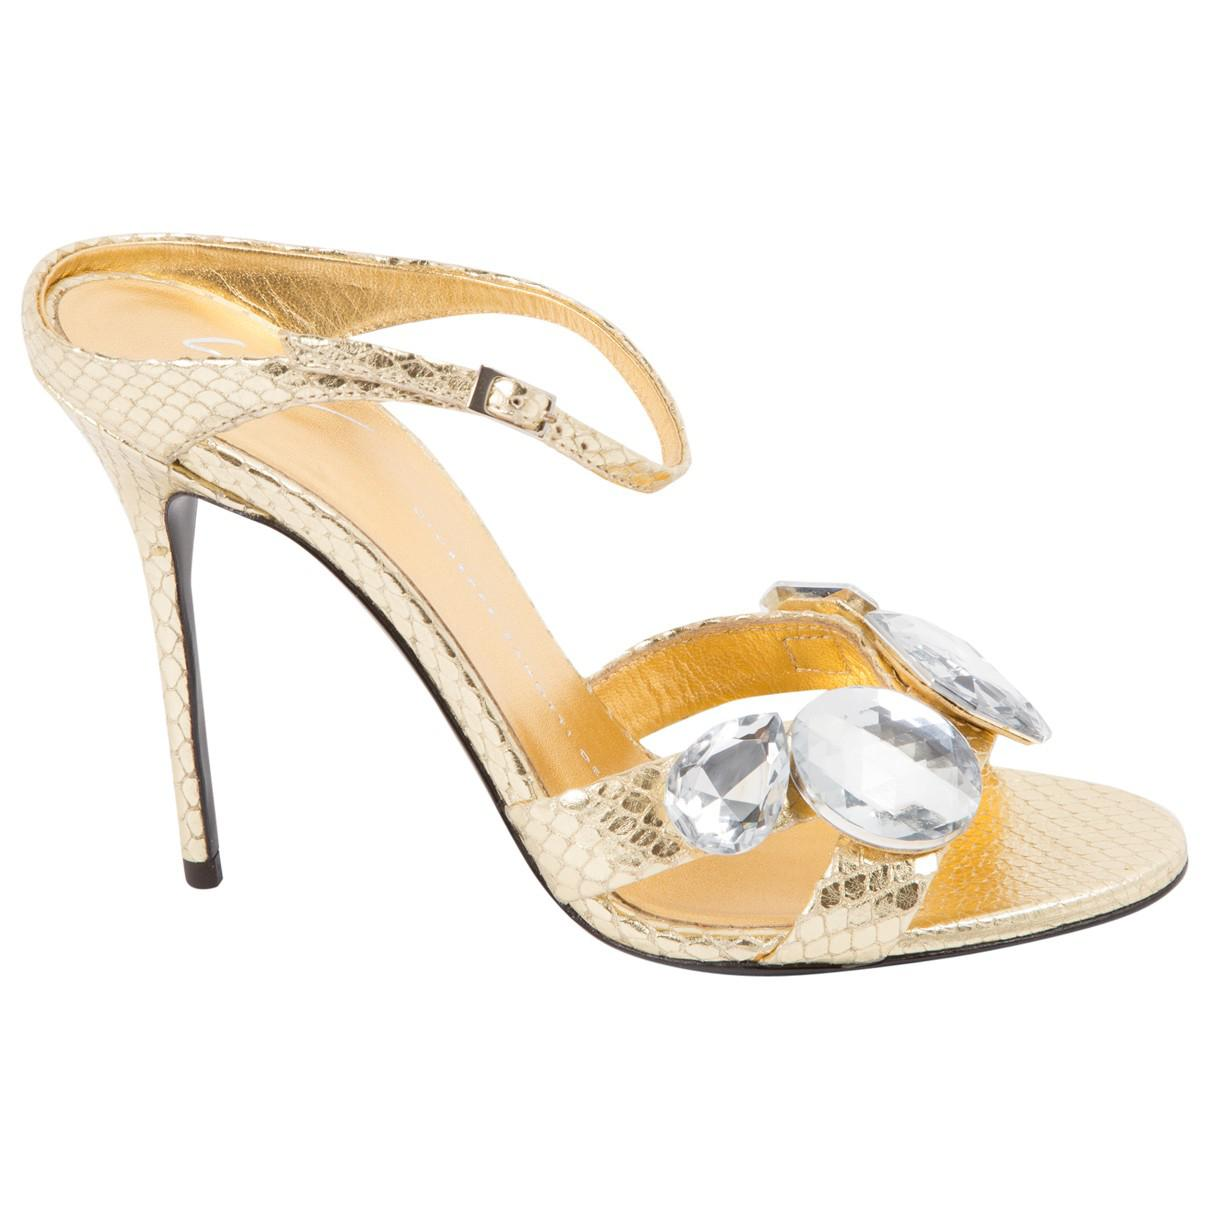 Pre-owned - LEATHER SANDALS Giuseppe Zanotti BOWk85if